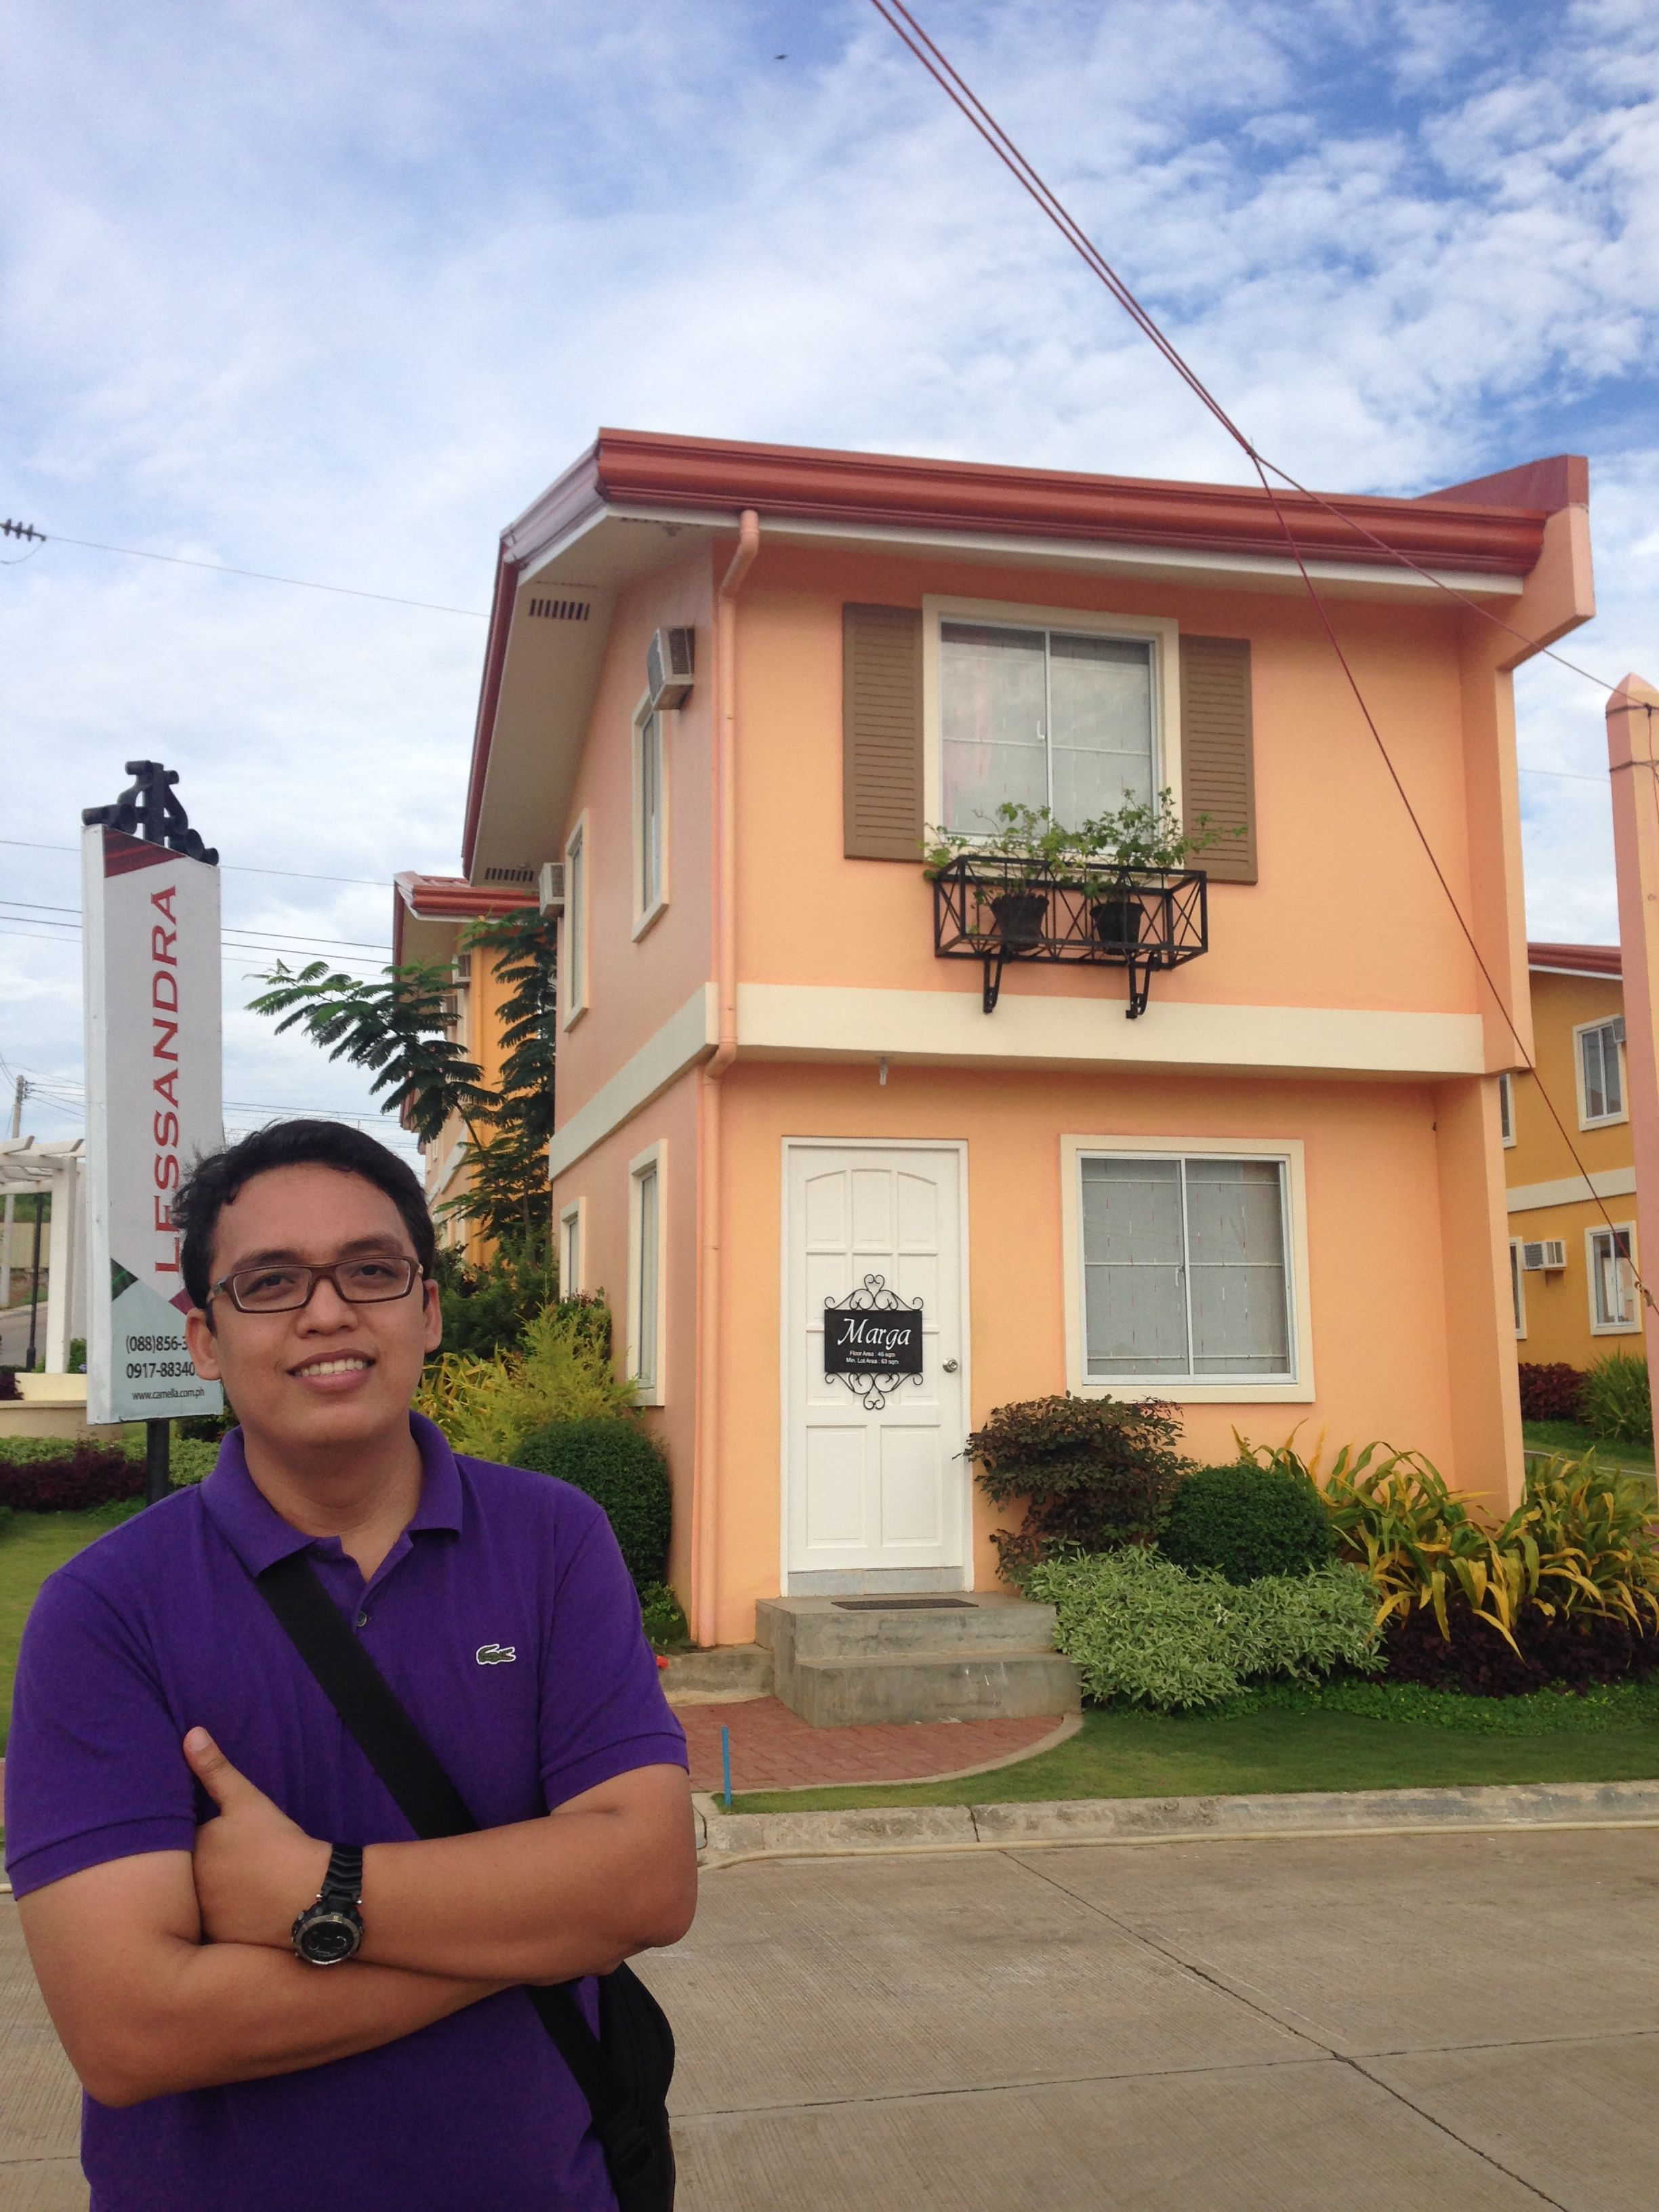 Pin On Your Home In Cdo